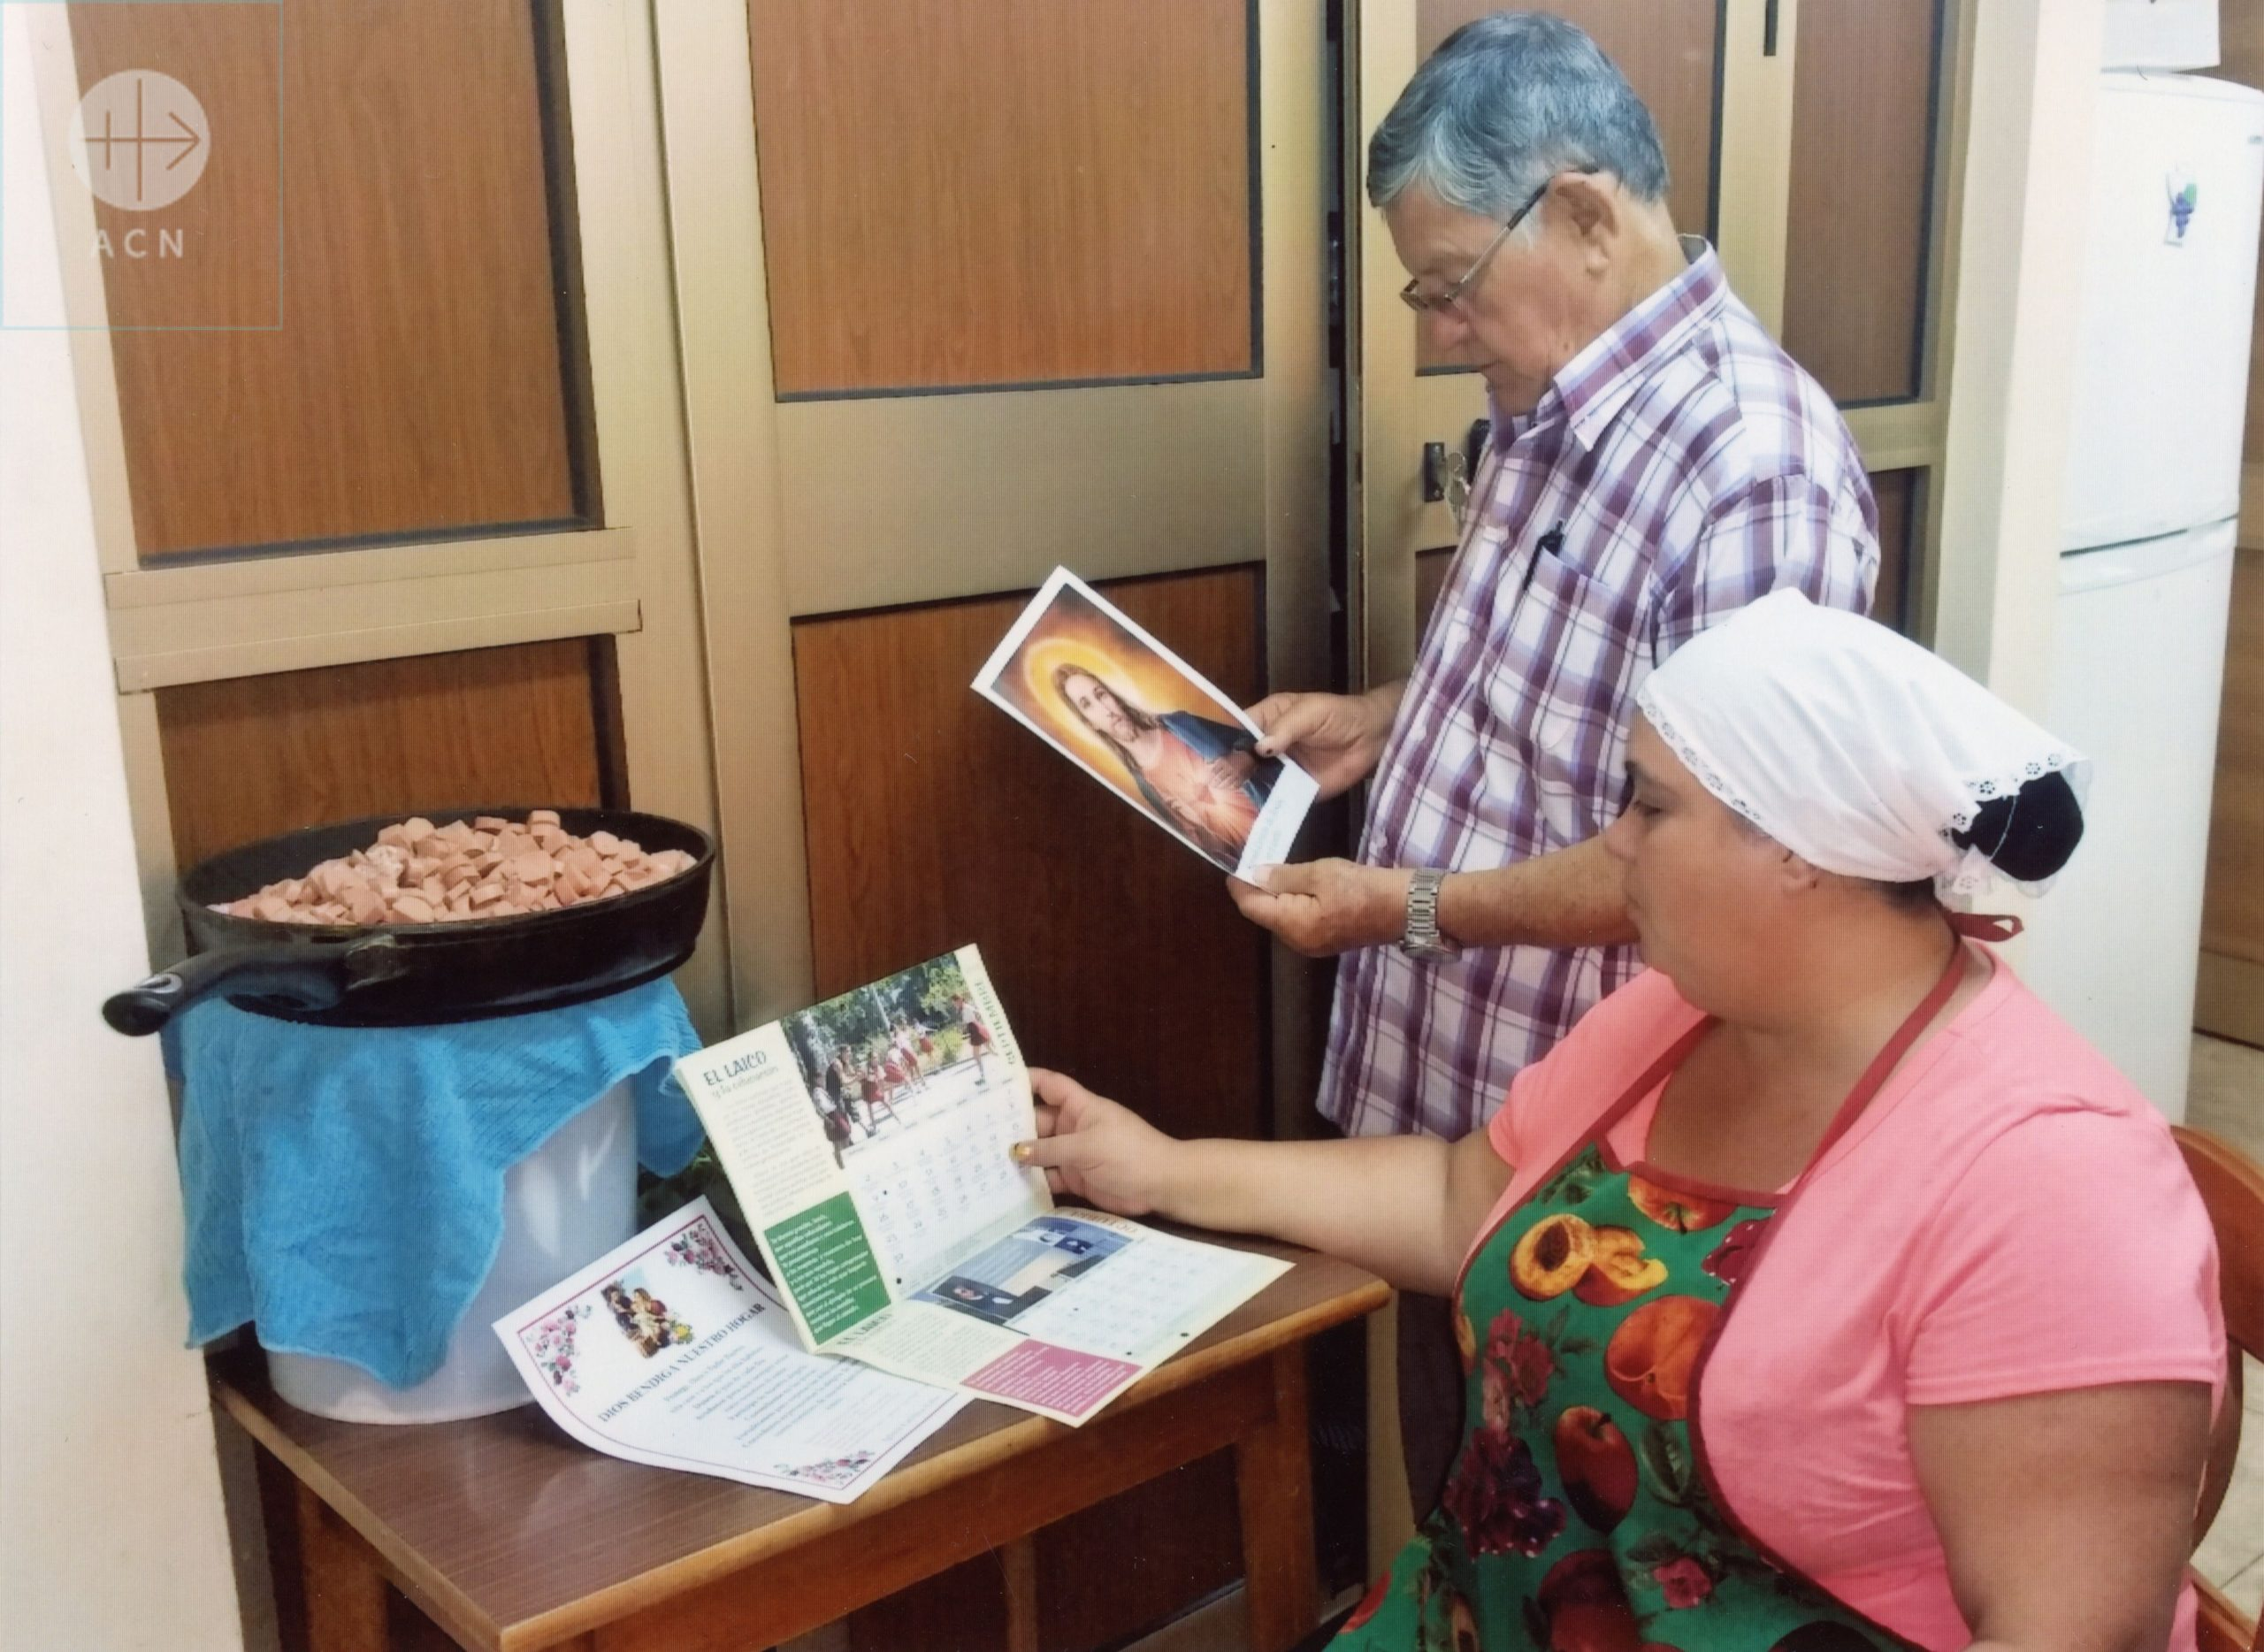 Acn's Project Of The Week - Cuba: A Catholic Calendar For